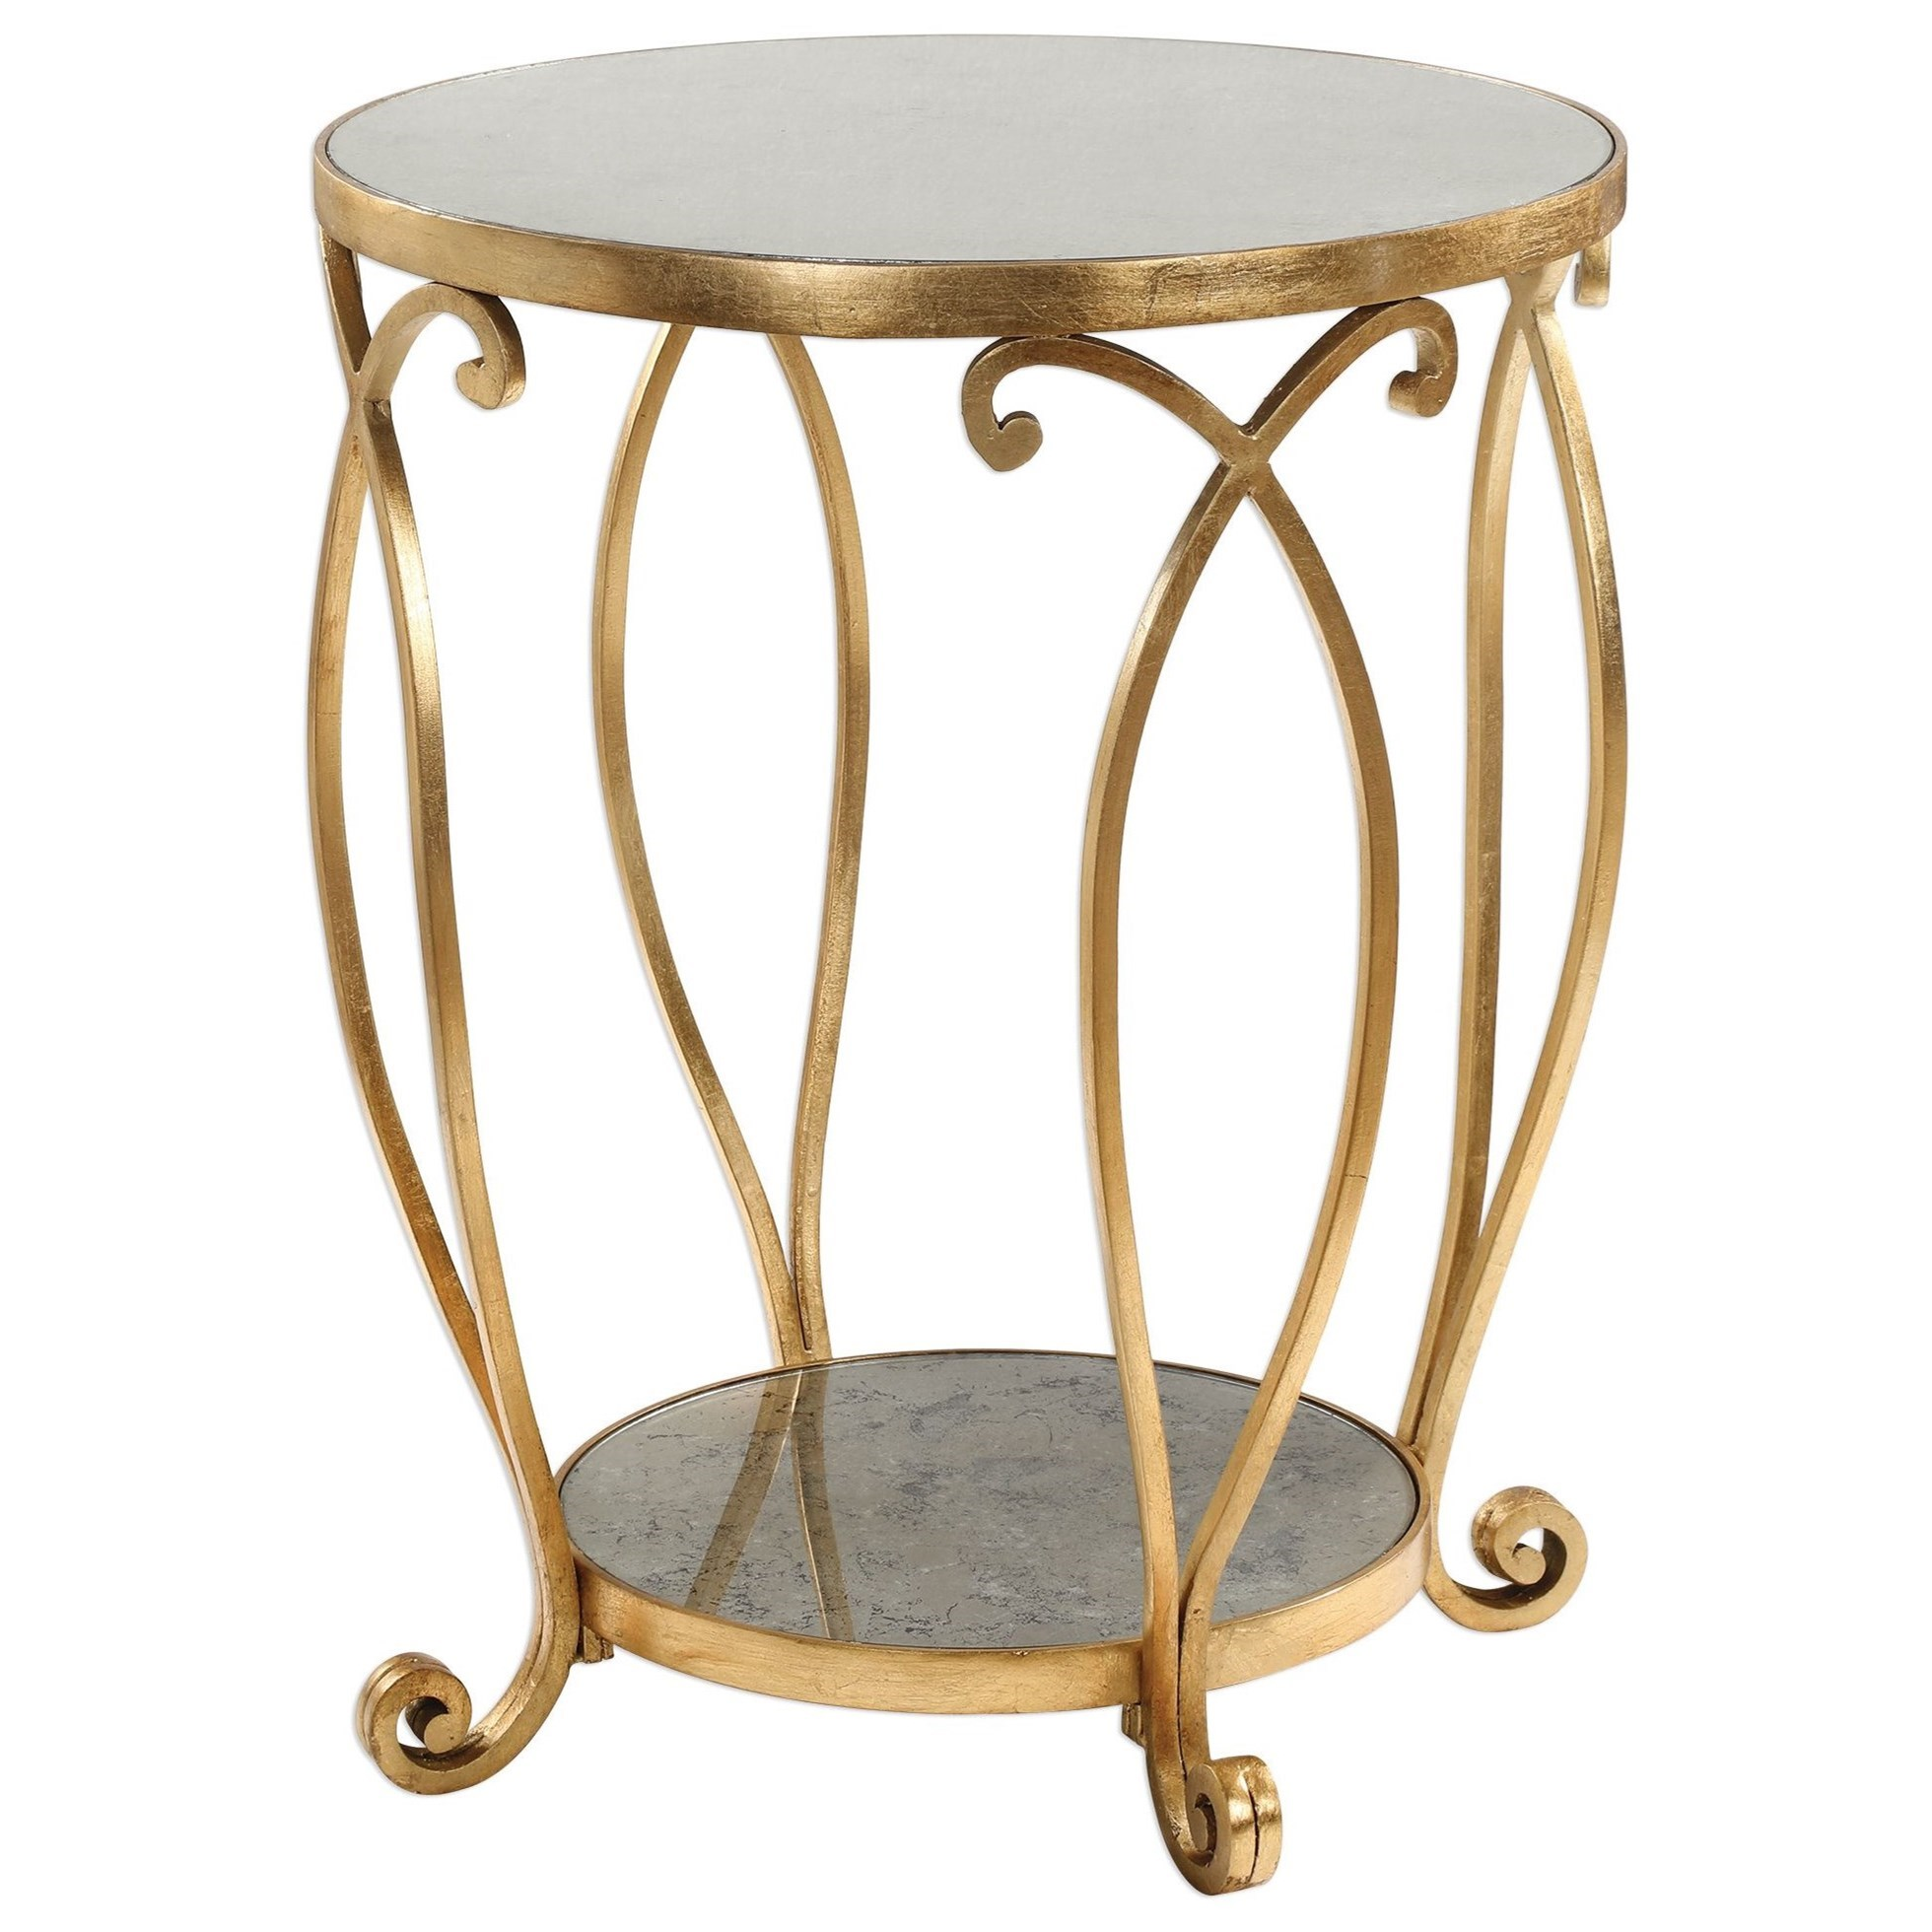 uttermost accent furniture occasional tables martella round products color gold table home wall decor ideas gray outdoor mid century modern cocktail kids edmonton beach chairs